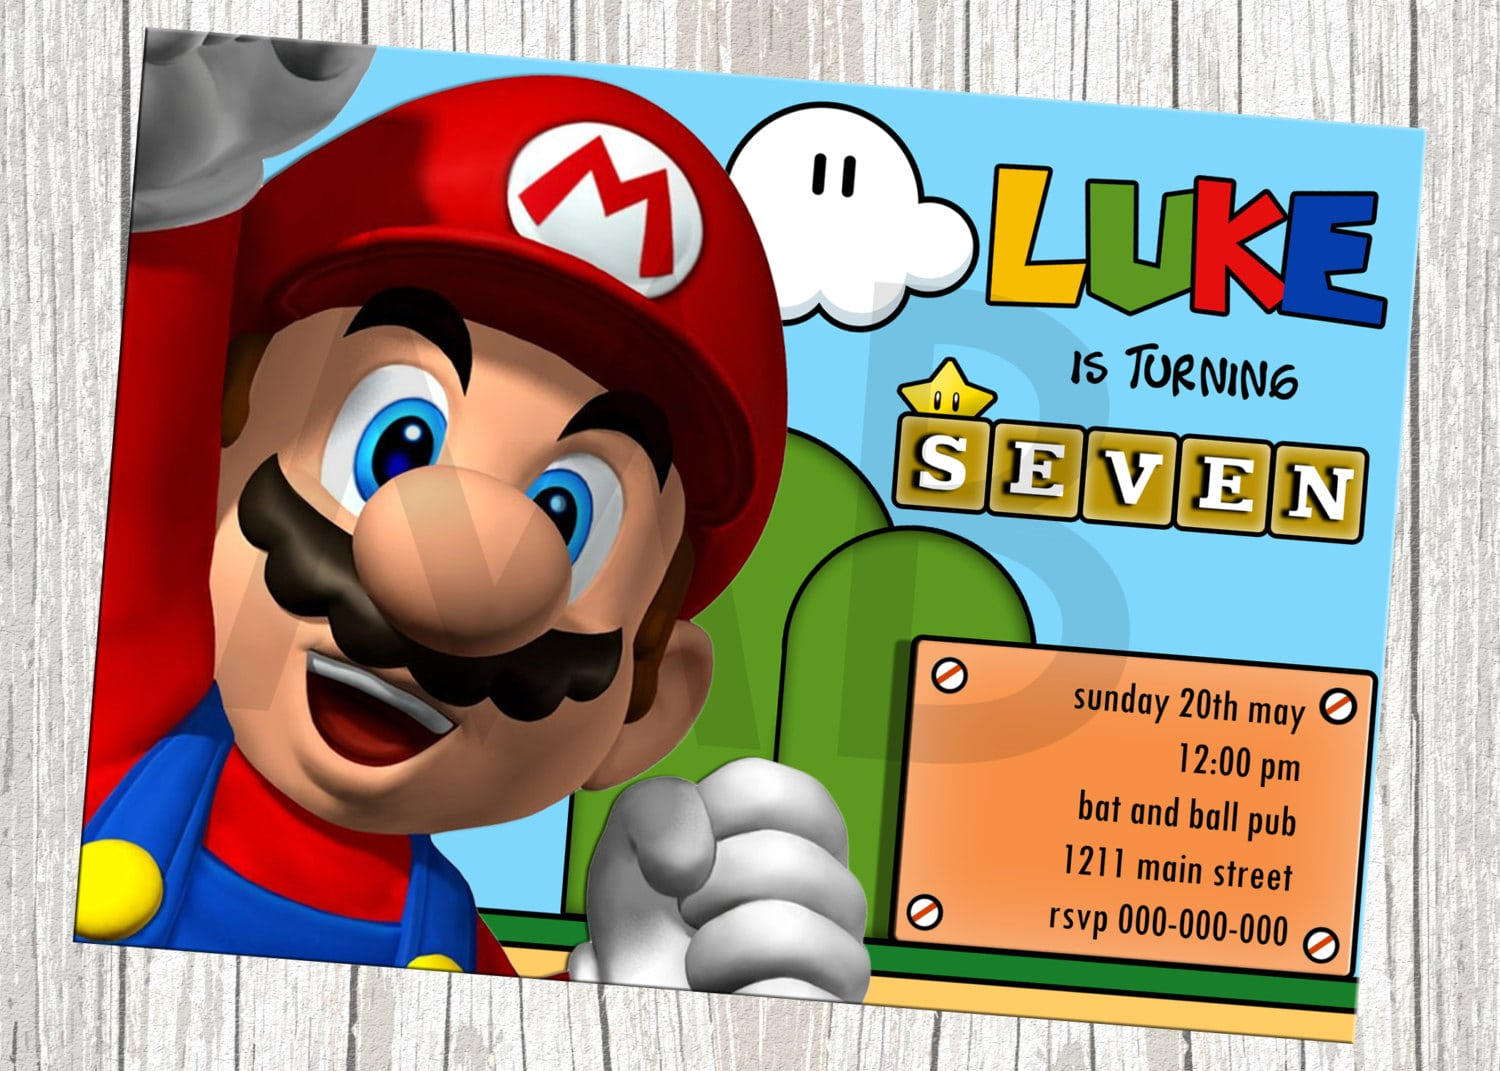 17 Best Images About Mario Bros Ideas On Pinterest